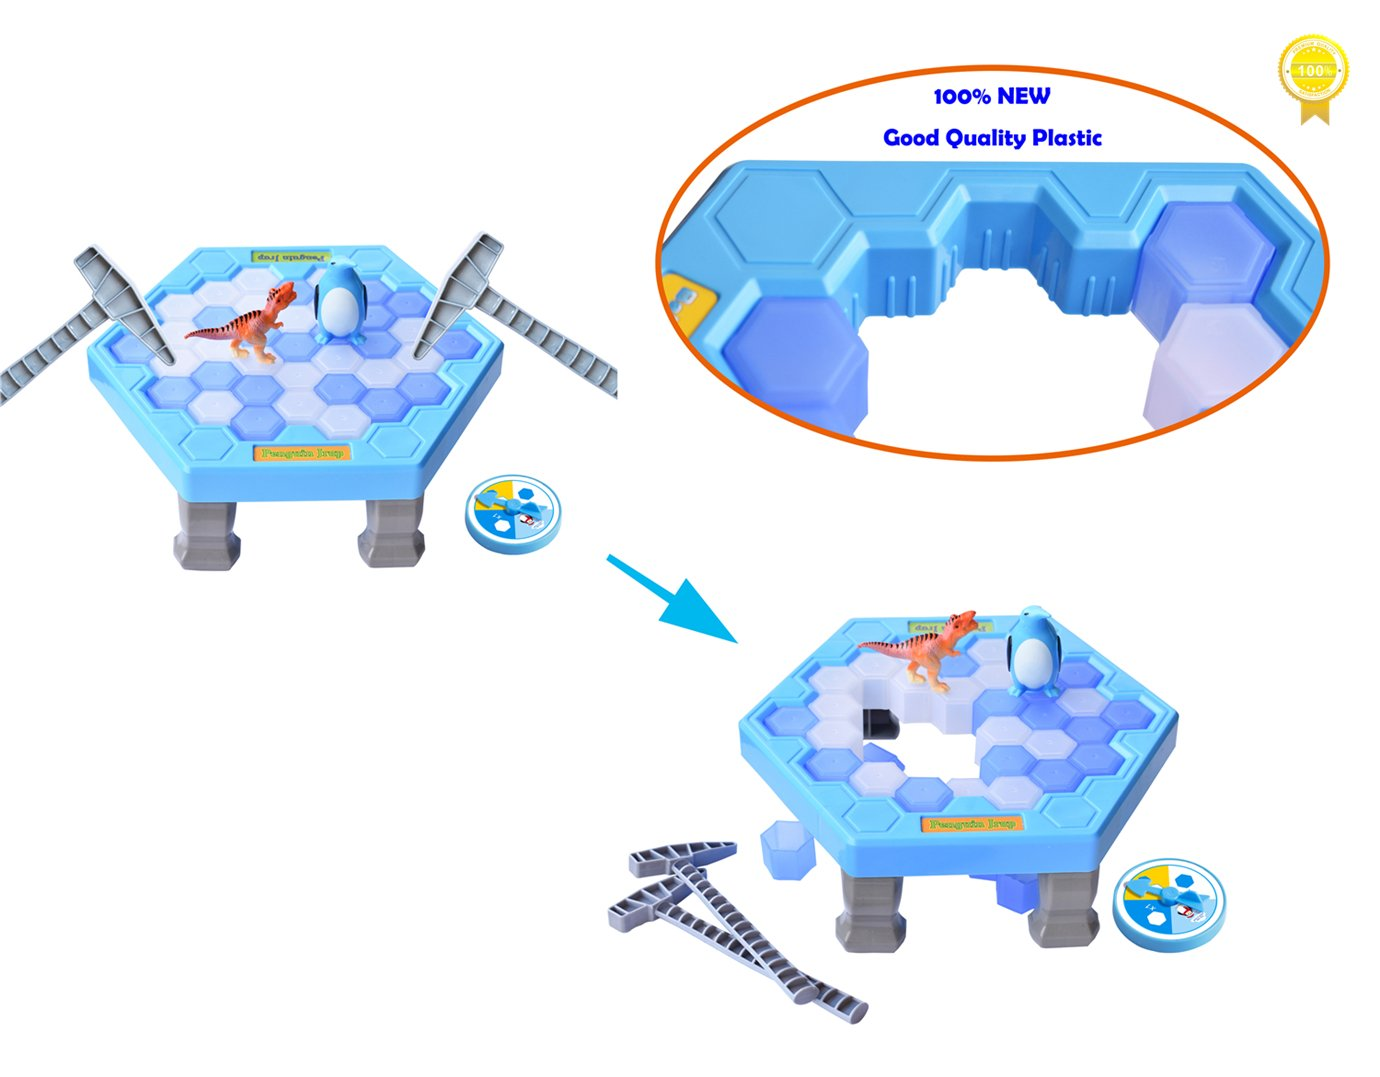 SPEAK FUN Penguin Trap Puzzle Table Games Balance Ice Cubes Icebreaking Games Save the Penguin Interactive Family Game by SPEAK FUN (Image #5)